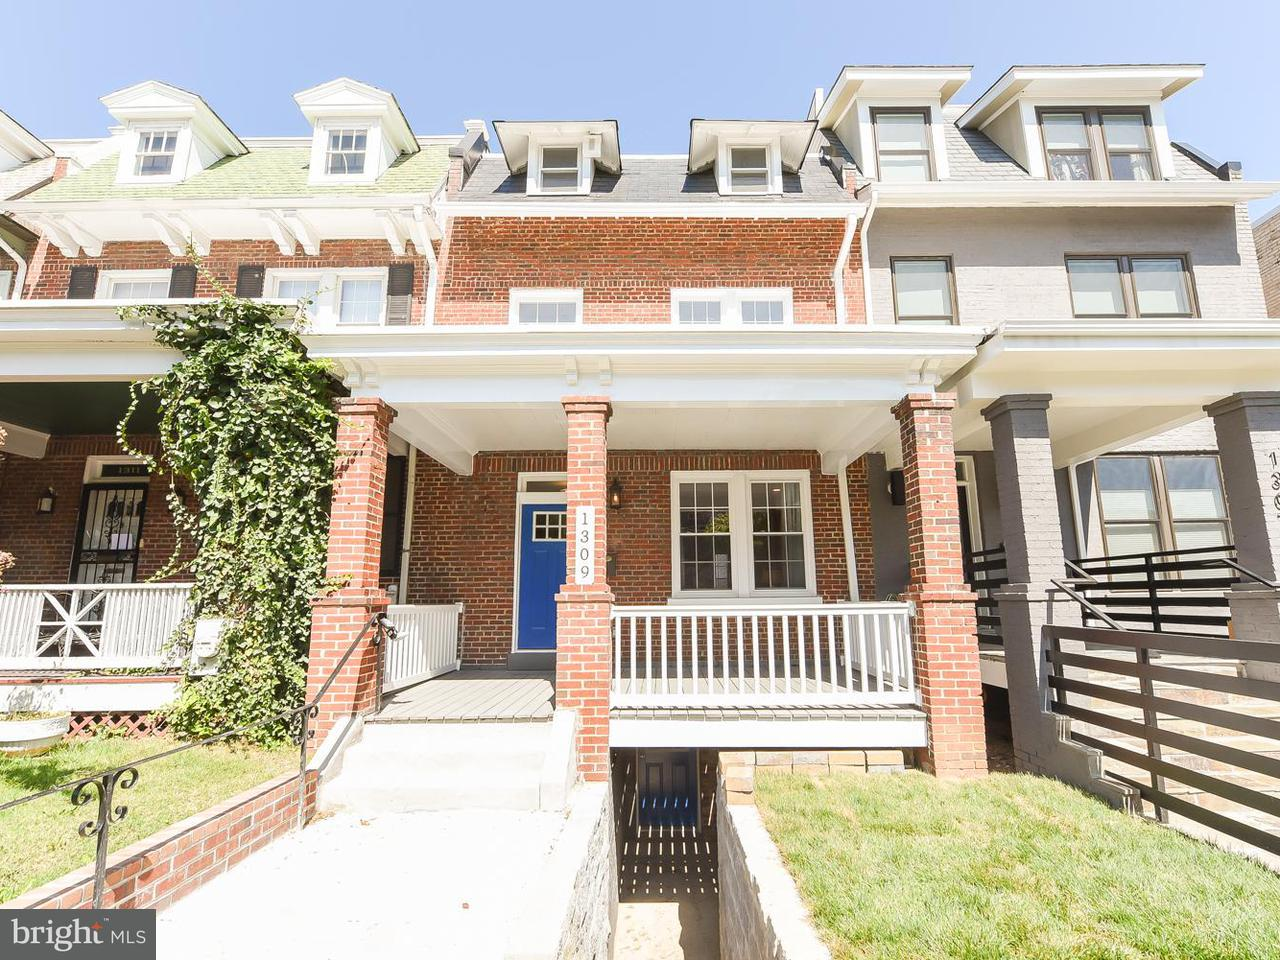 Townhouse for Sale at 1309 RANDOLPH ST NW #2 1309 RANDOLPH ST NW #2 Washington, District Of Columbia 20011 United States